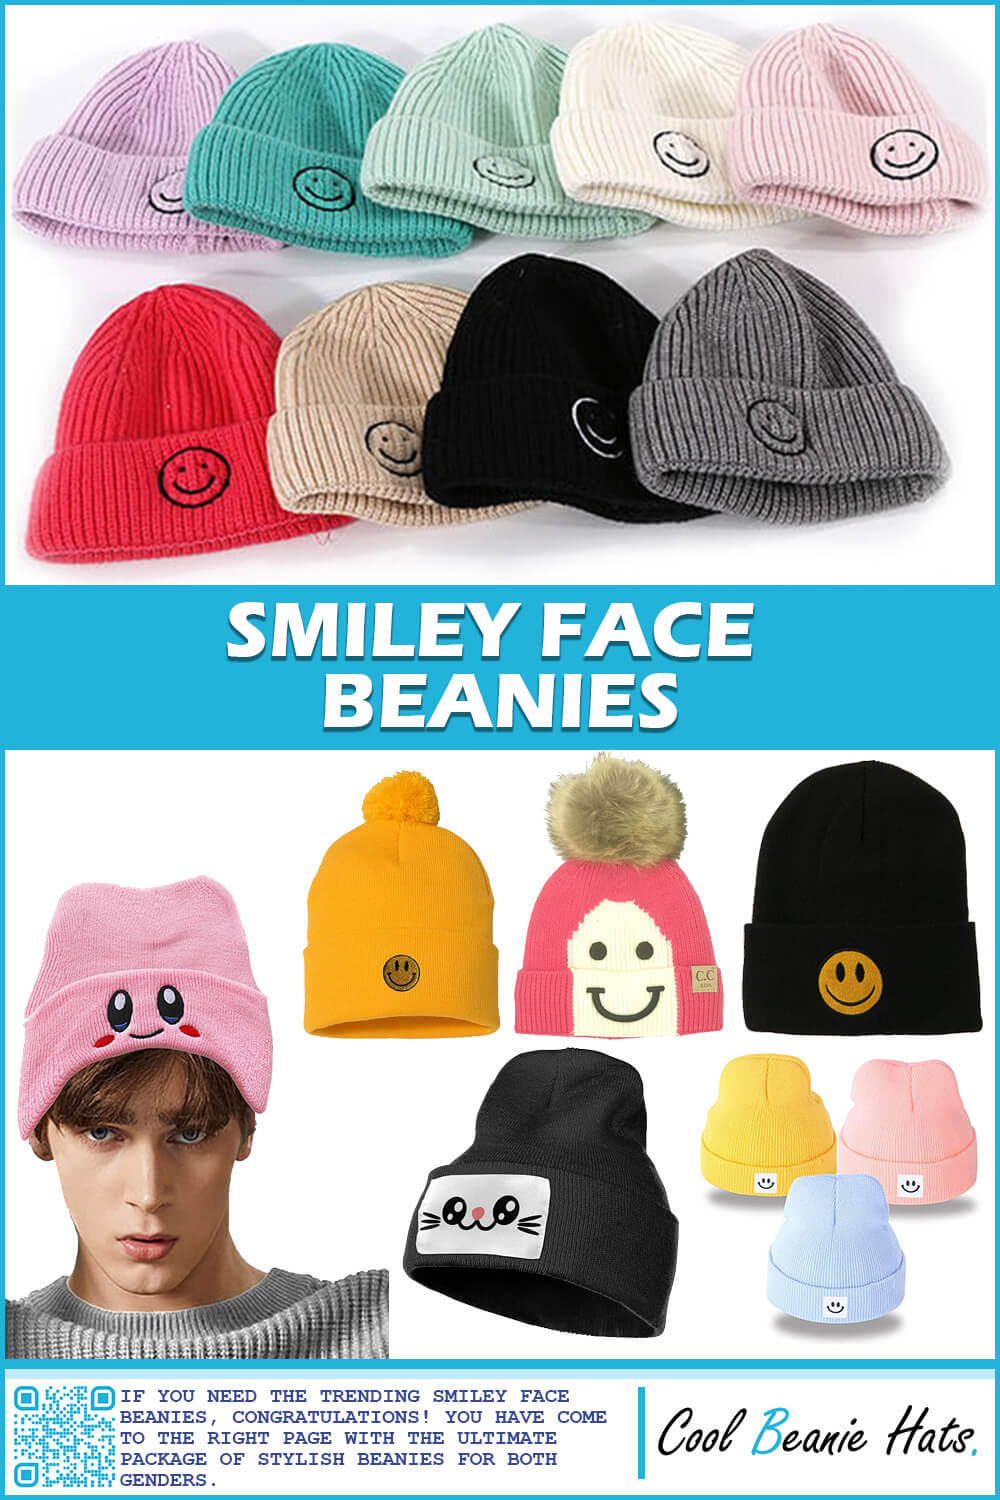 smiley face beanies